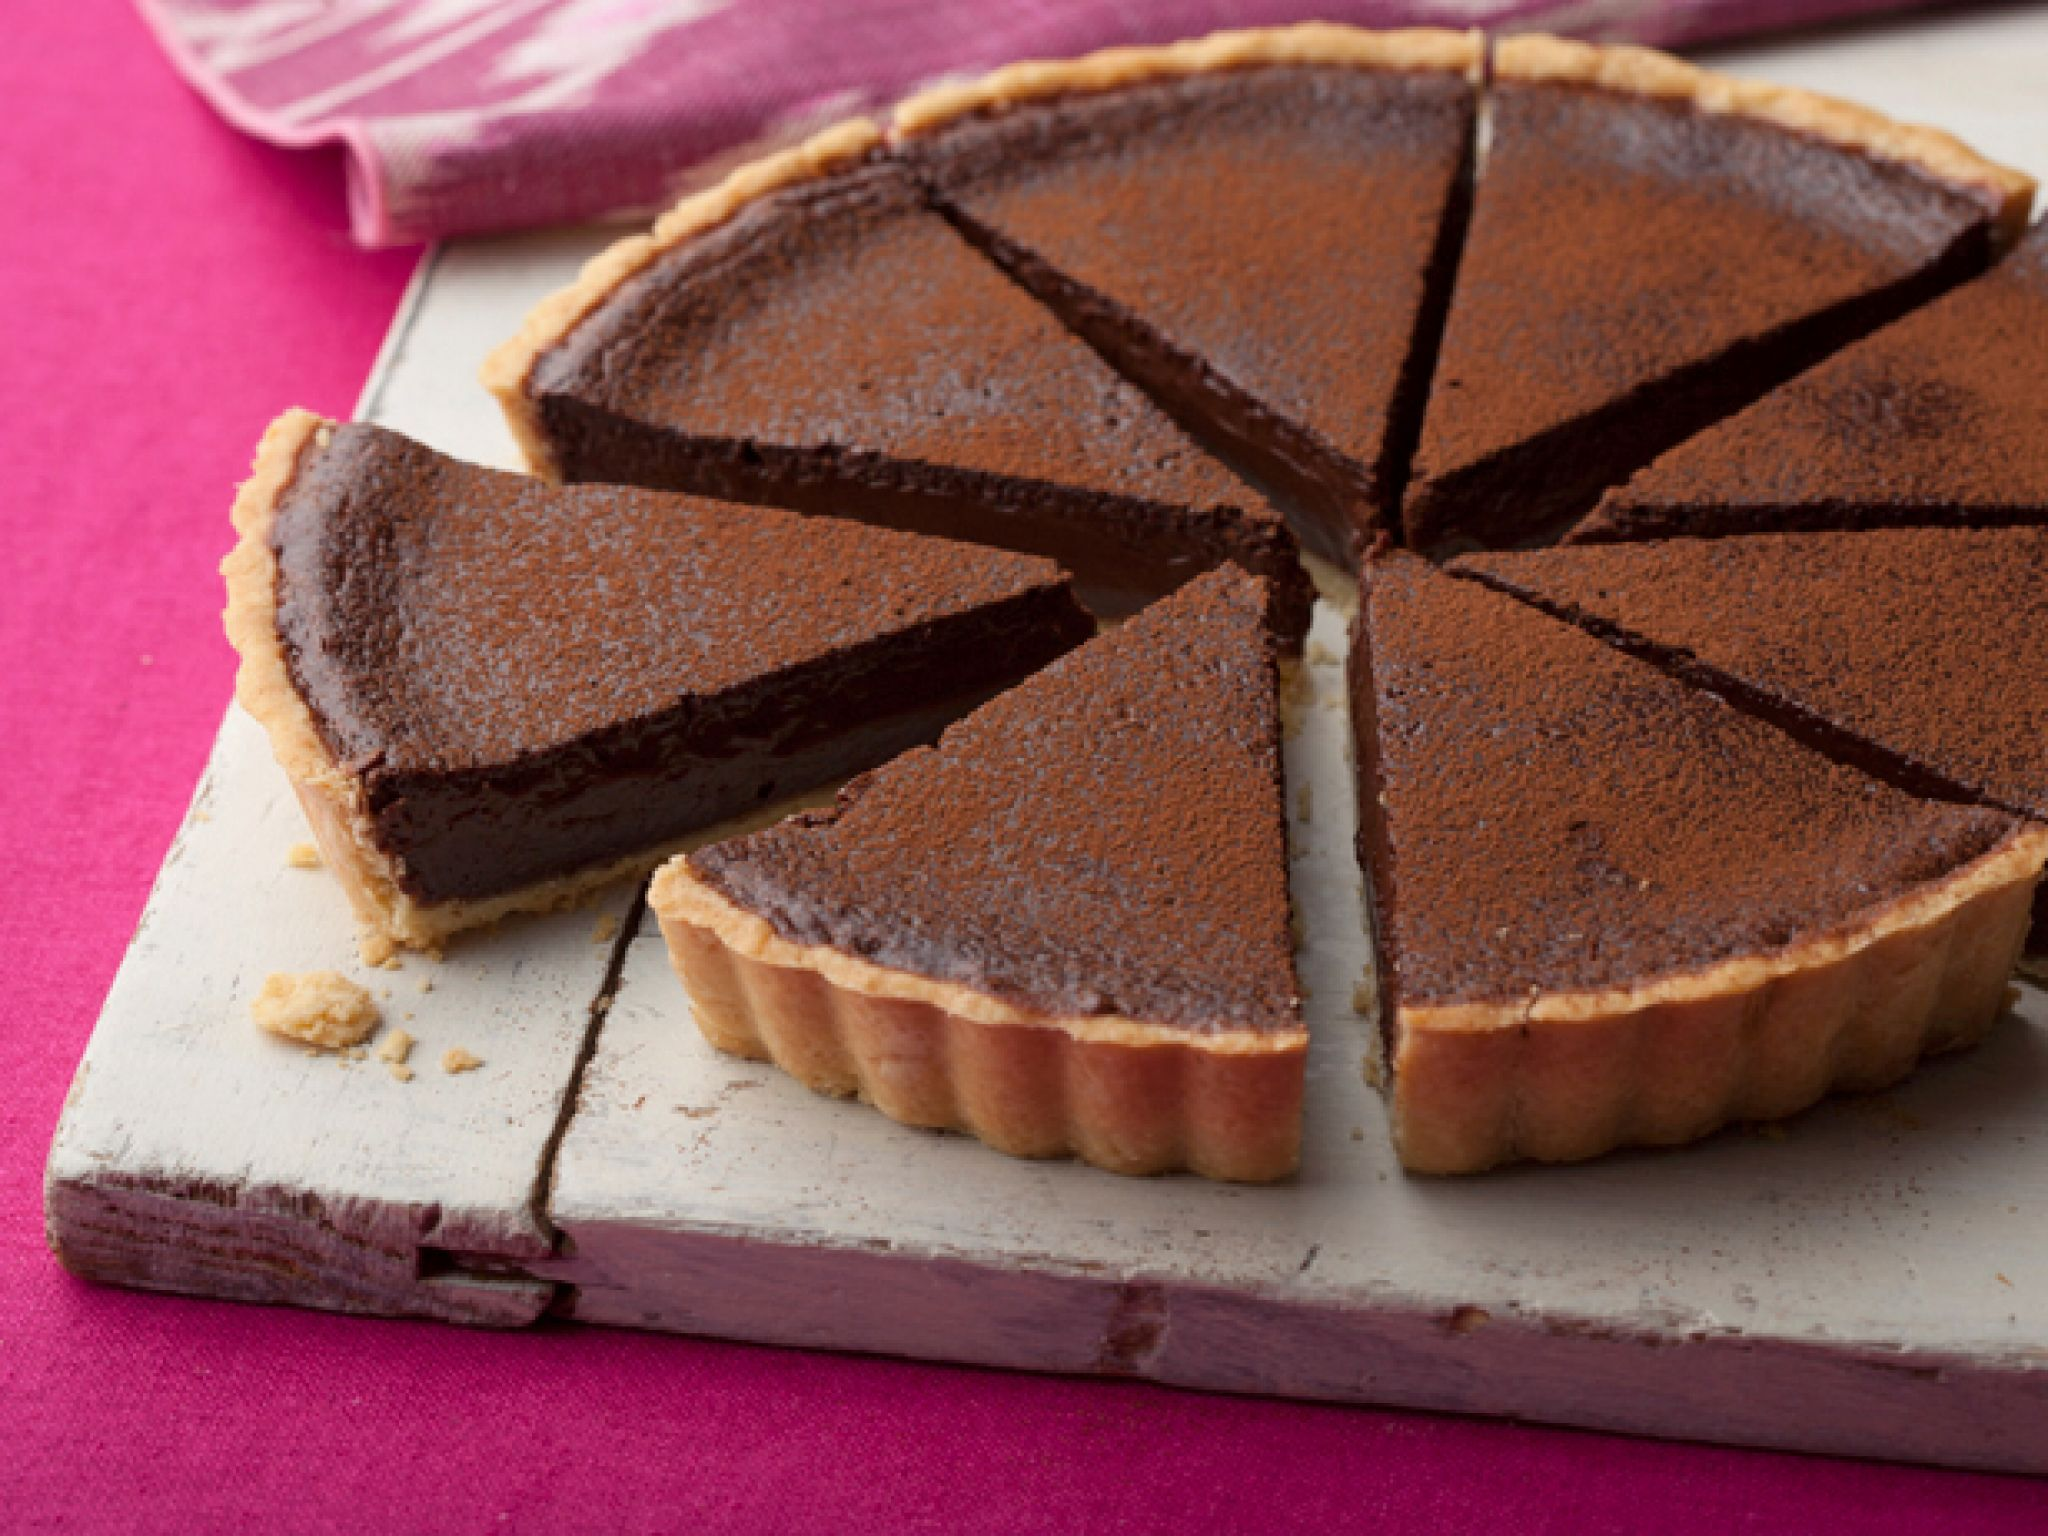 Chocolate tart recipe tyler florence chocolate tarts and tart chocolate tart recipe tyler florence chocolate tarts and tart recipes forumfinder Image collections